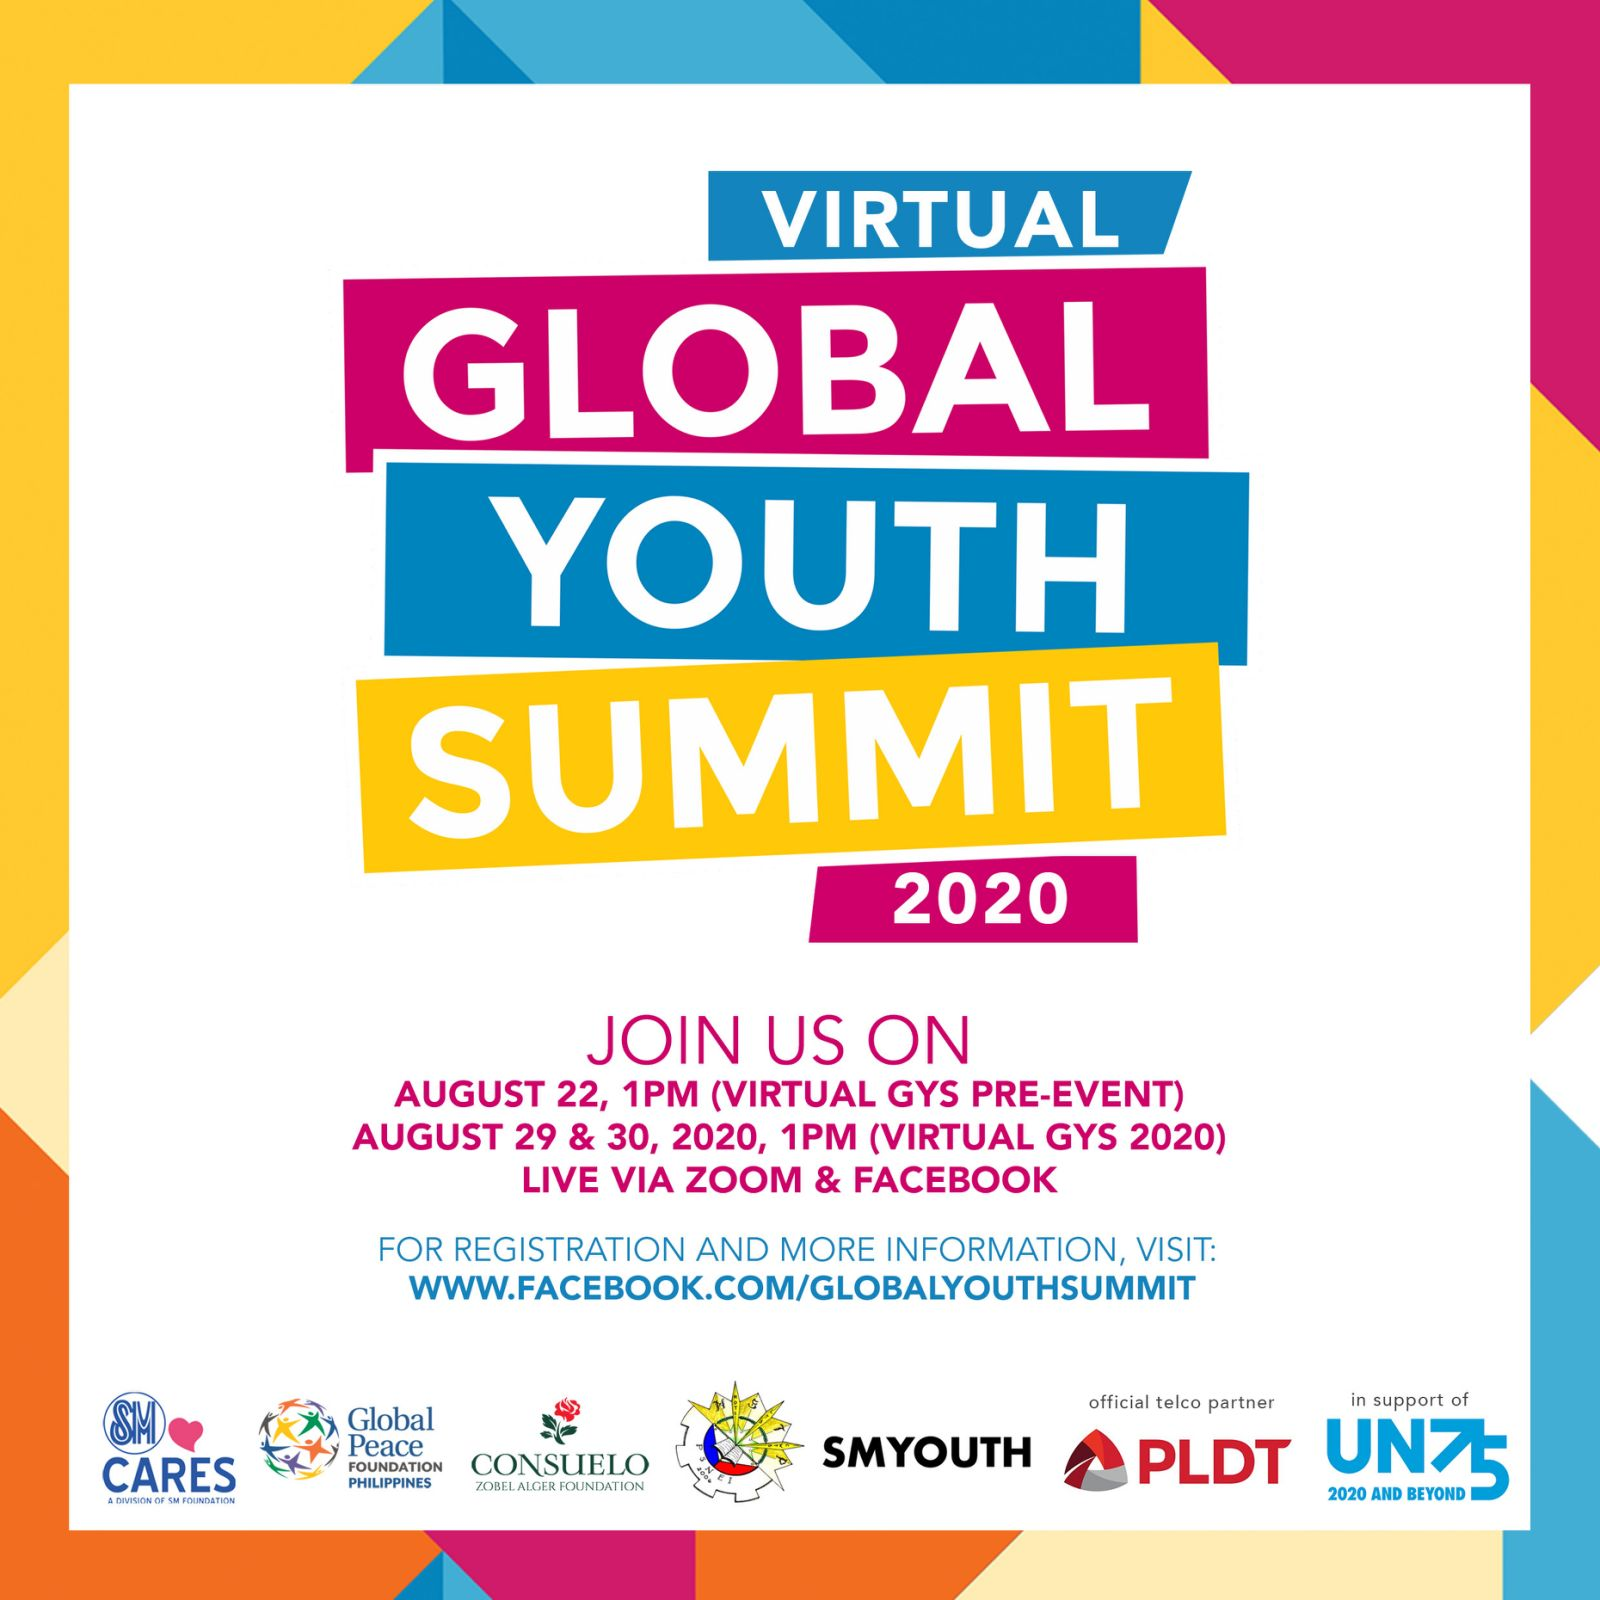 Global Peace Foundation, SM Cares to hold virtual Global Youth Summit from Aug. 29-30